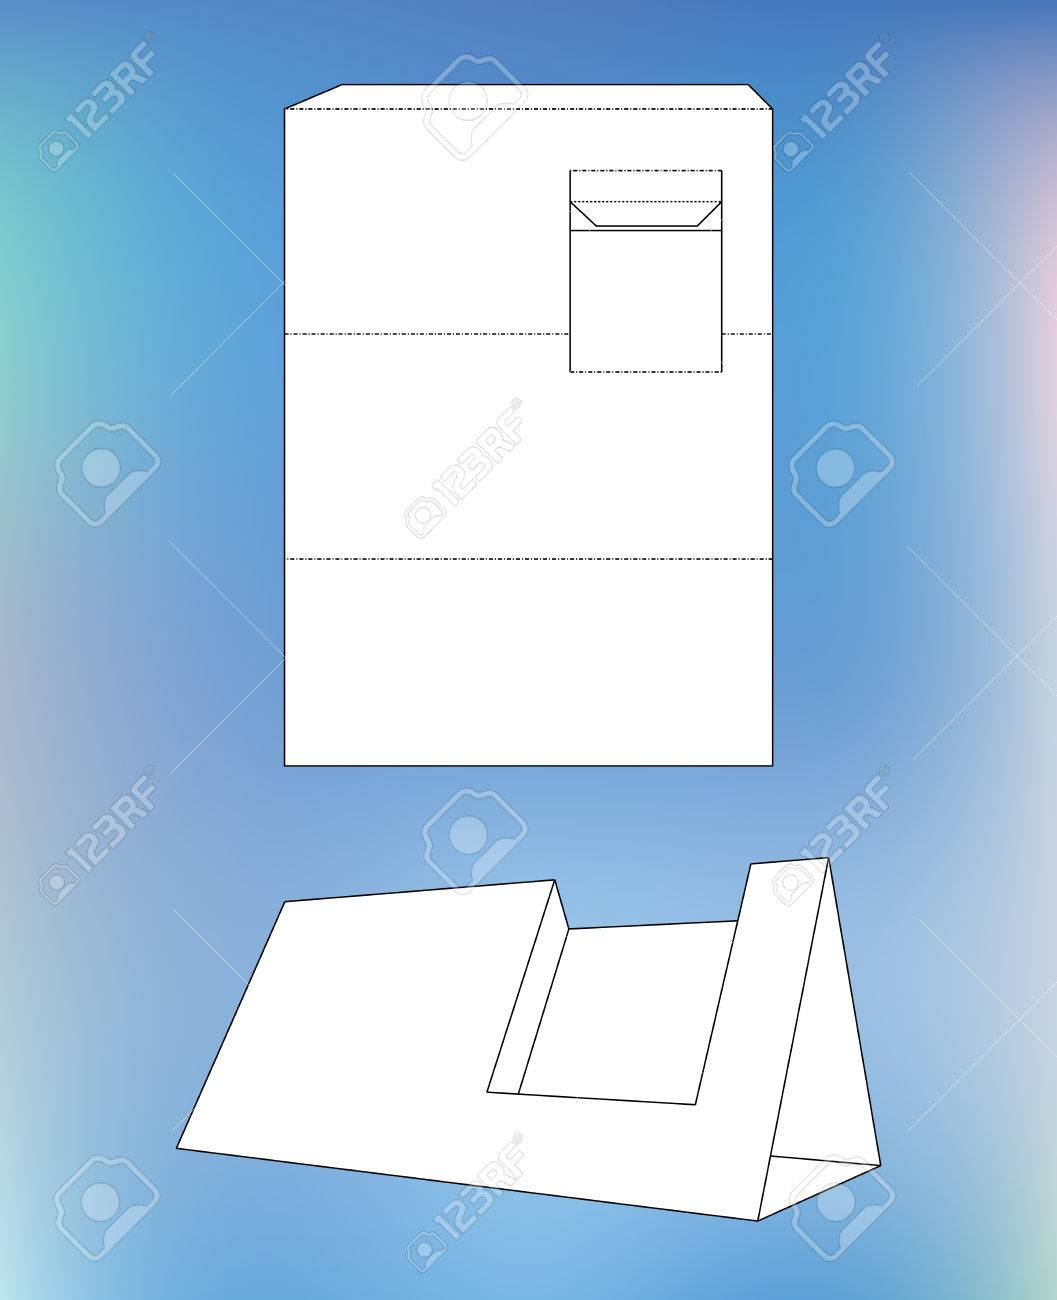 Business card display box product display box with blueprint business card display box product display box with blueprint layout business card holder and reheart Image collections